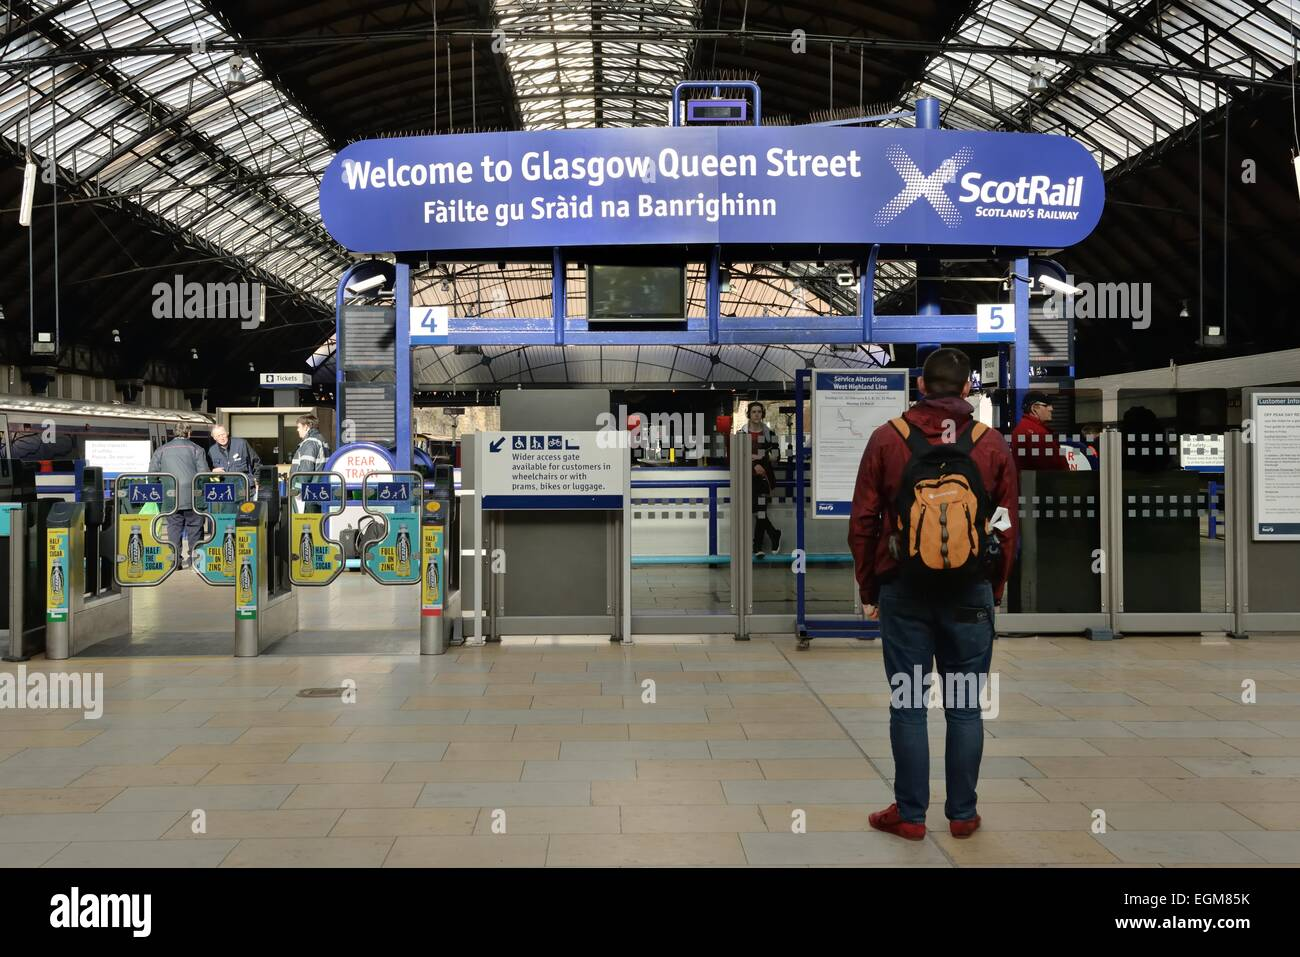 Welcome sign, also in Gaelic,  in Queen Street train station in Glasgow, Scotland, UK - Stock Image